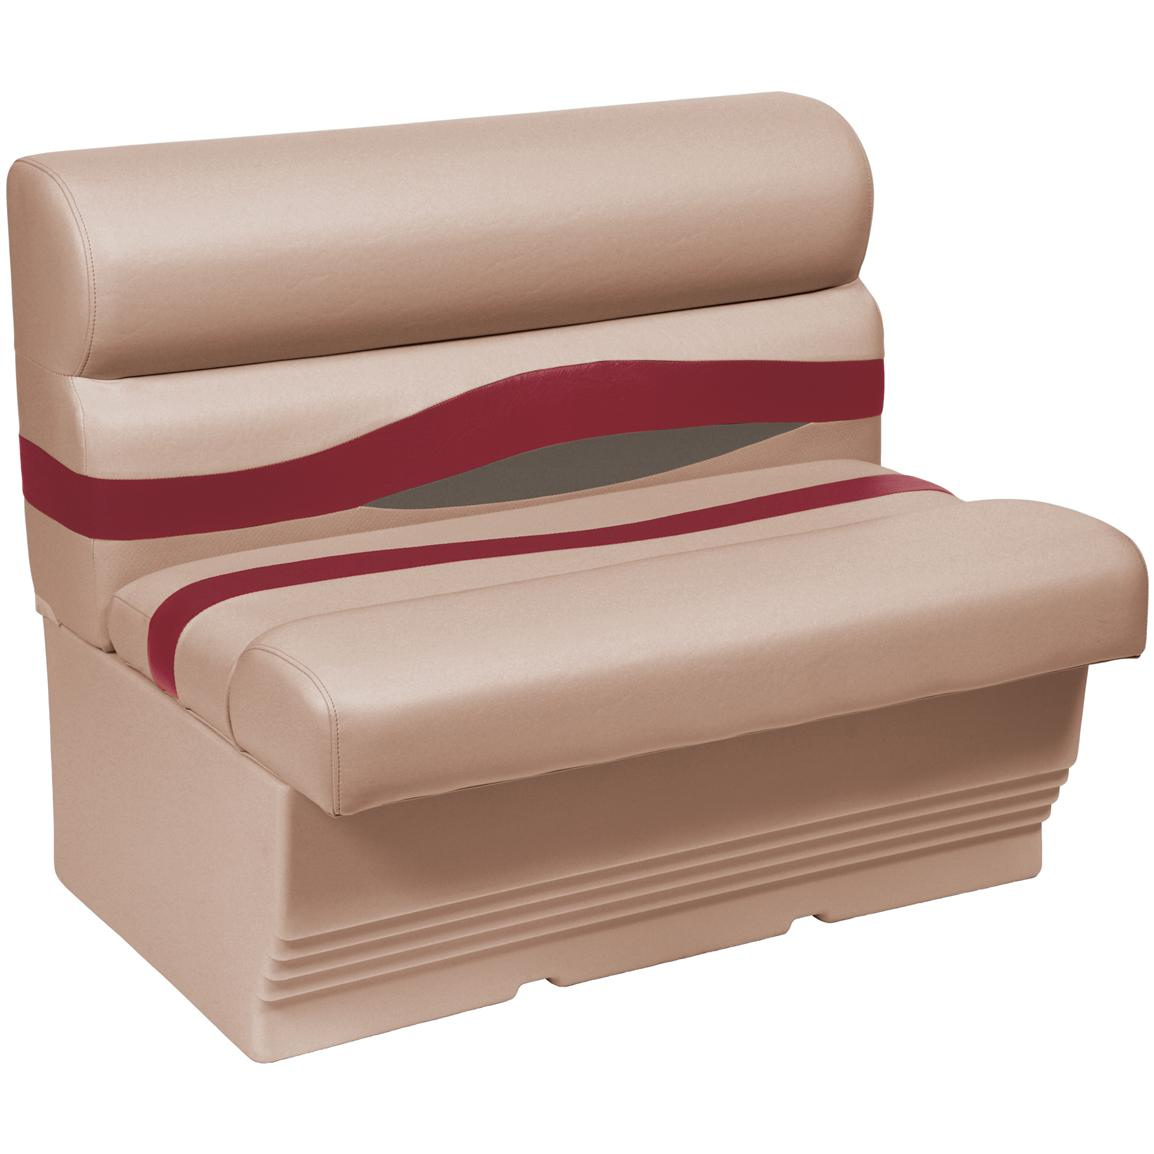 Wise® Premier 1100 Series 36 inch Pontoon Bench Seat, Color E